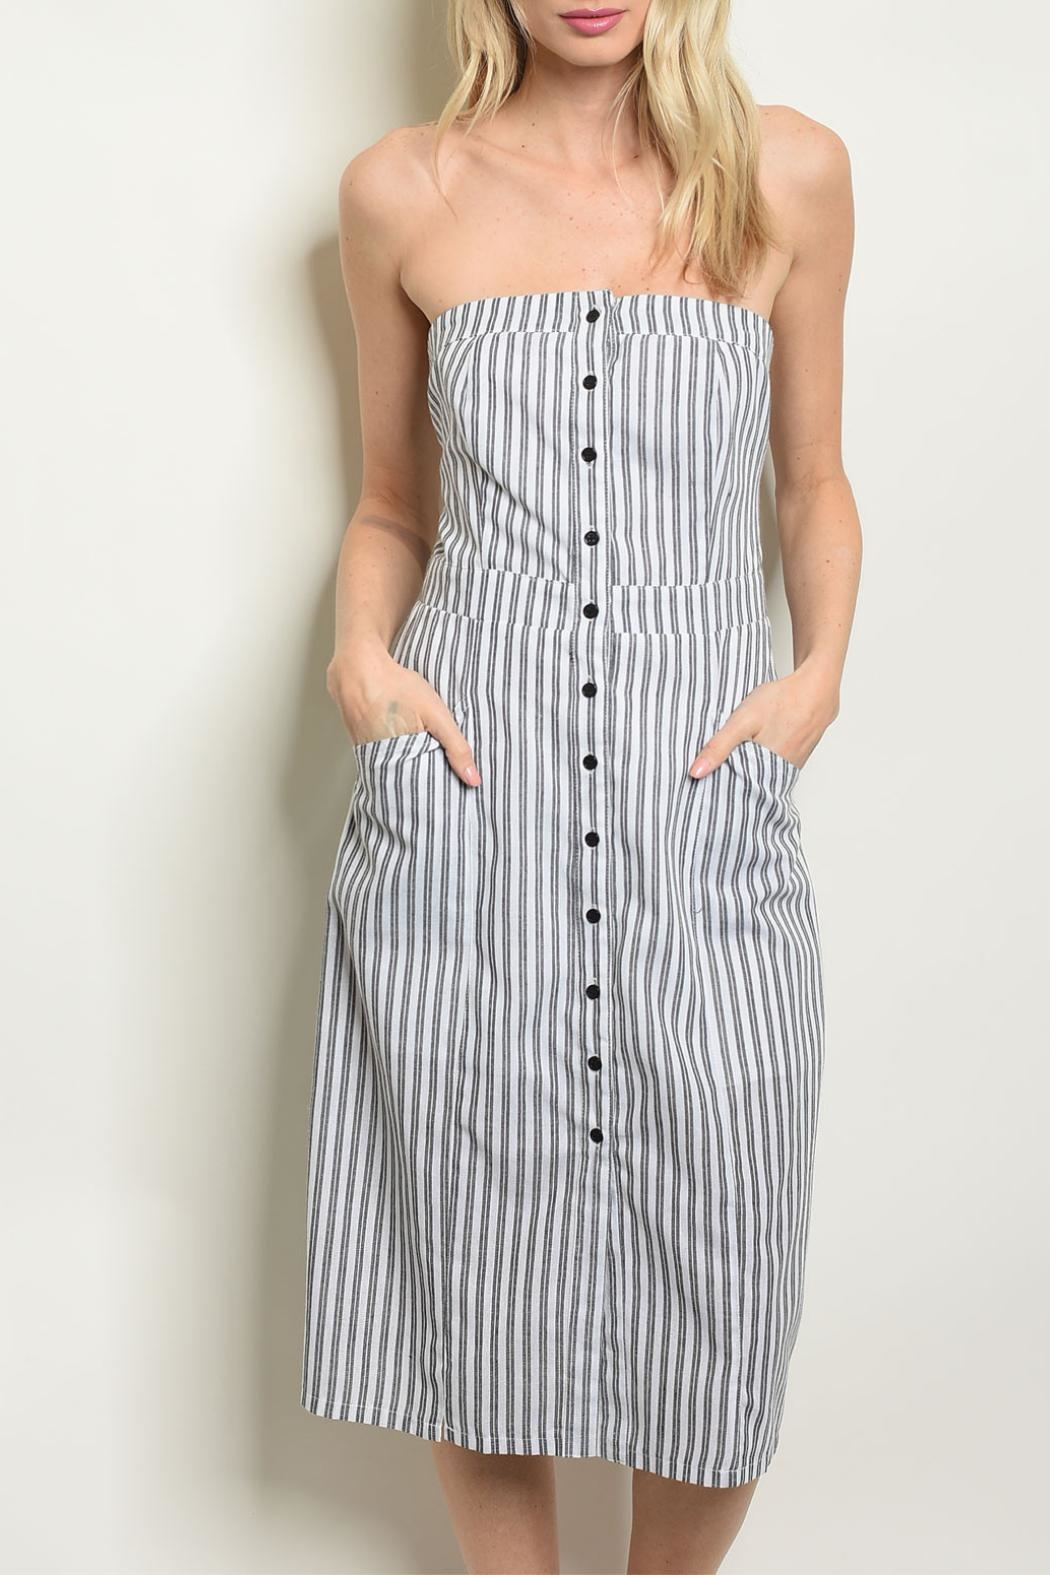 Kate Collection Gray Stripe Dress - Main Image